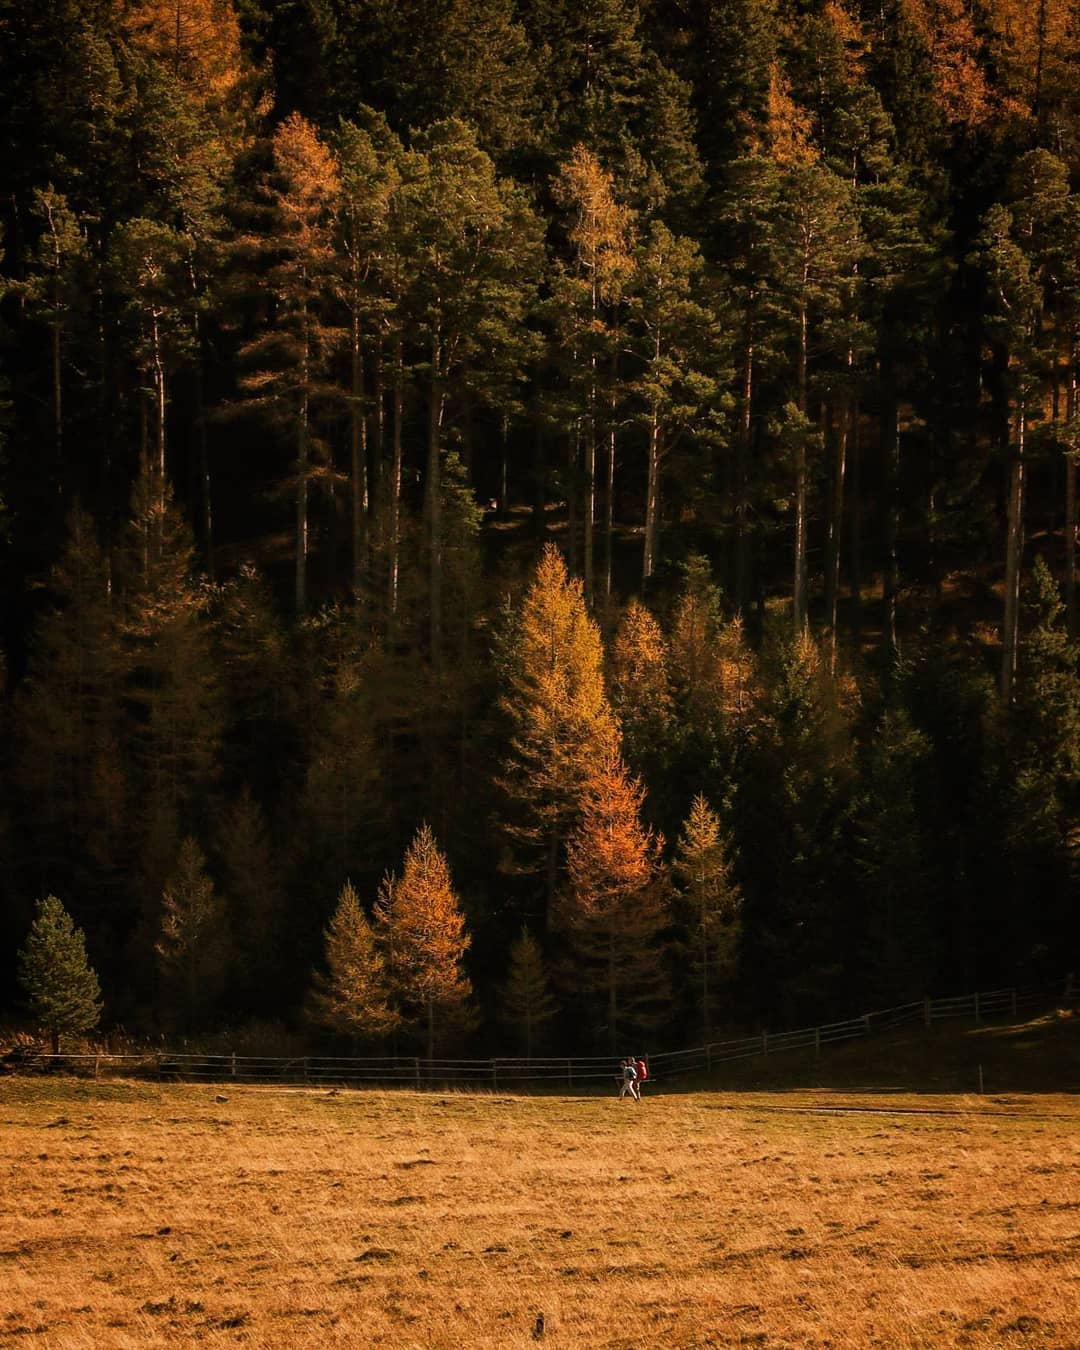 View of a forest in autumn